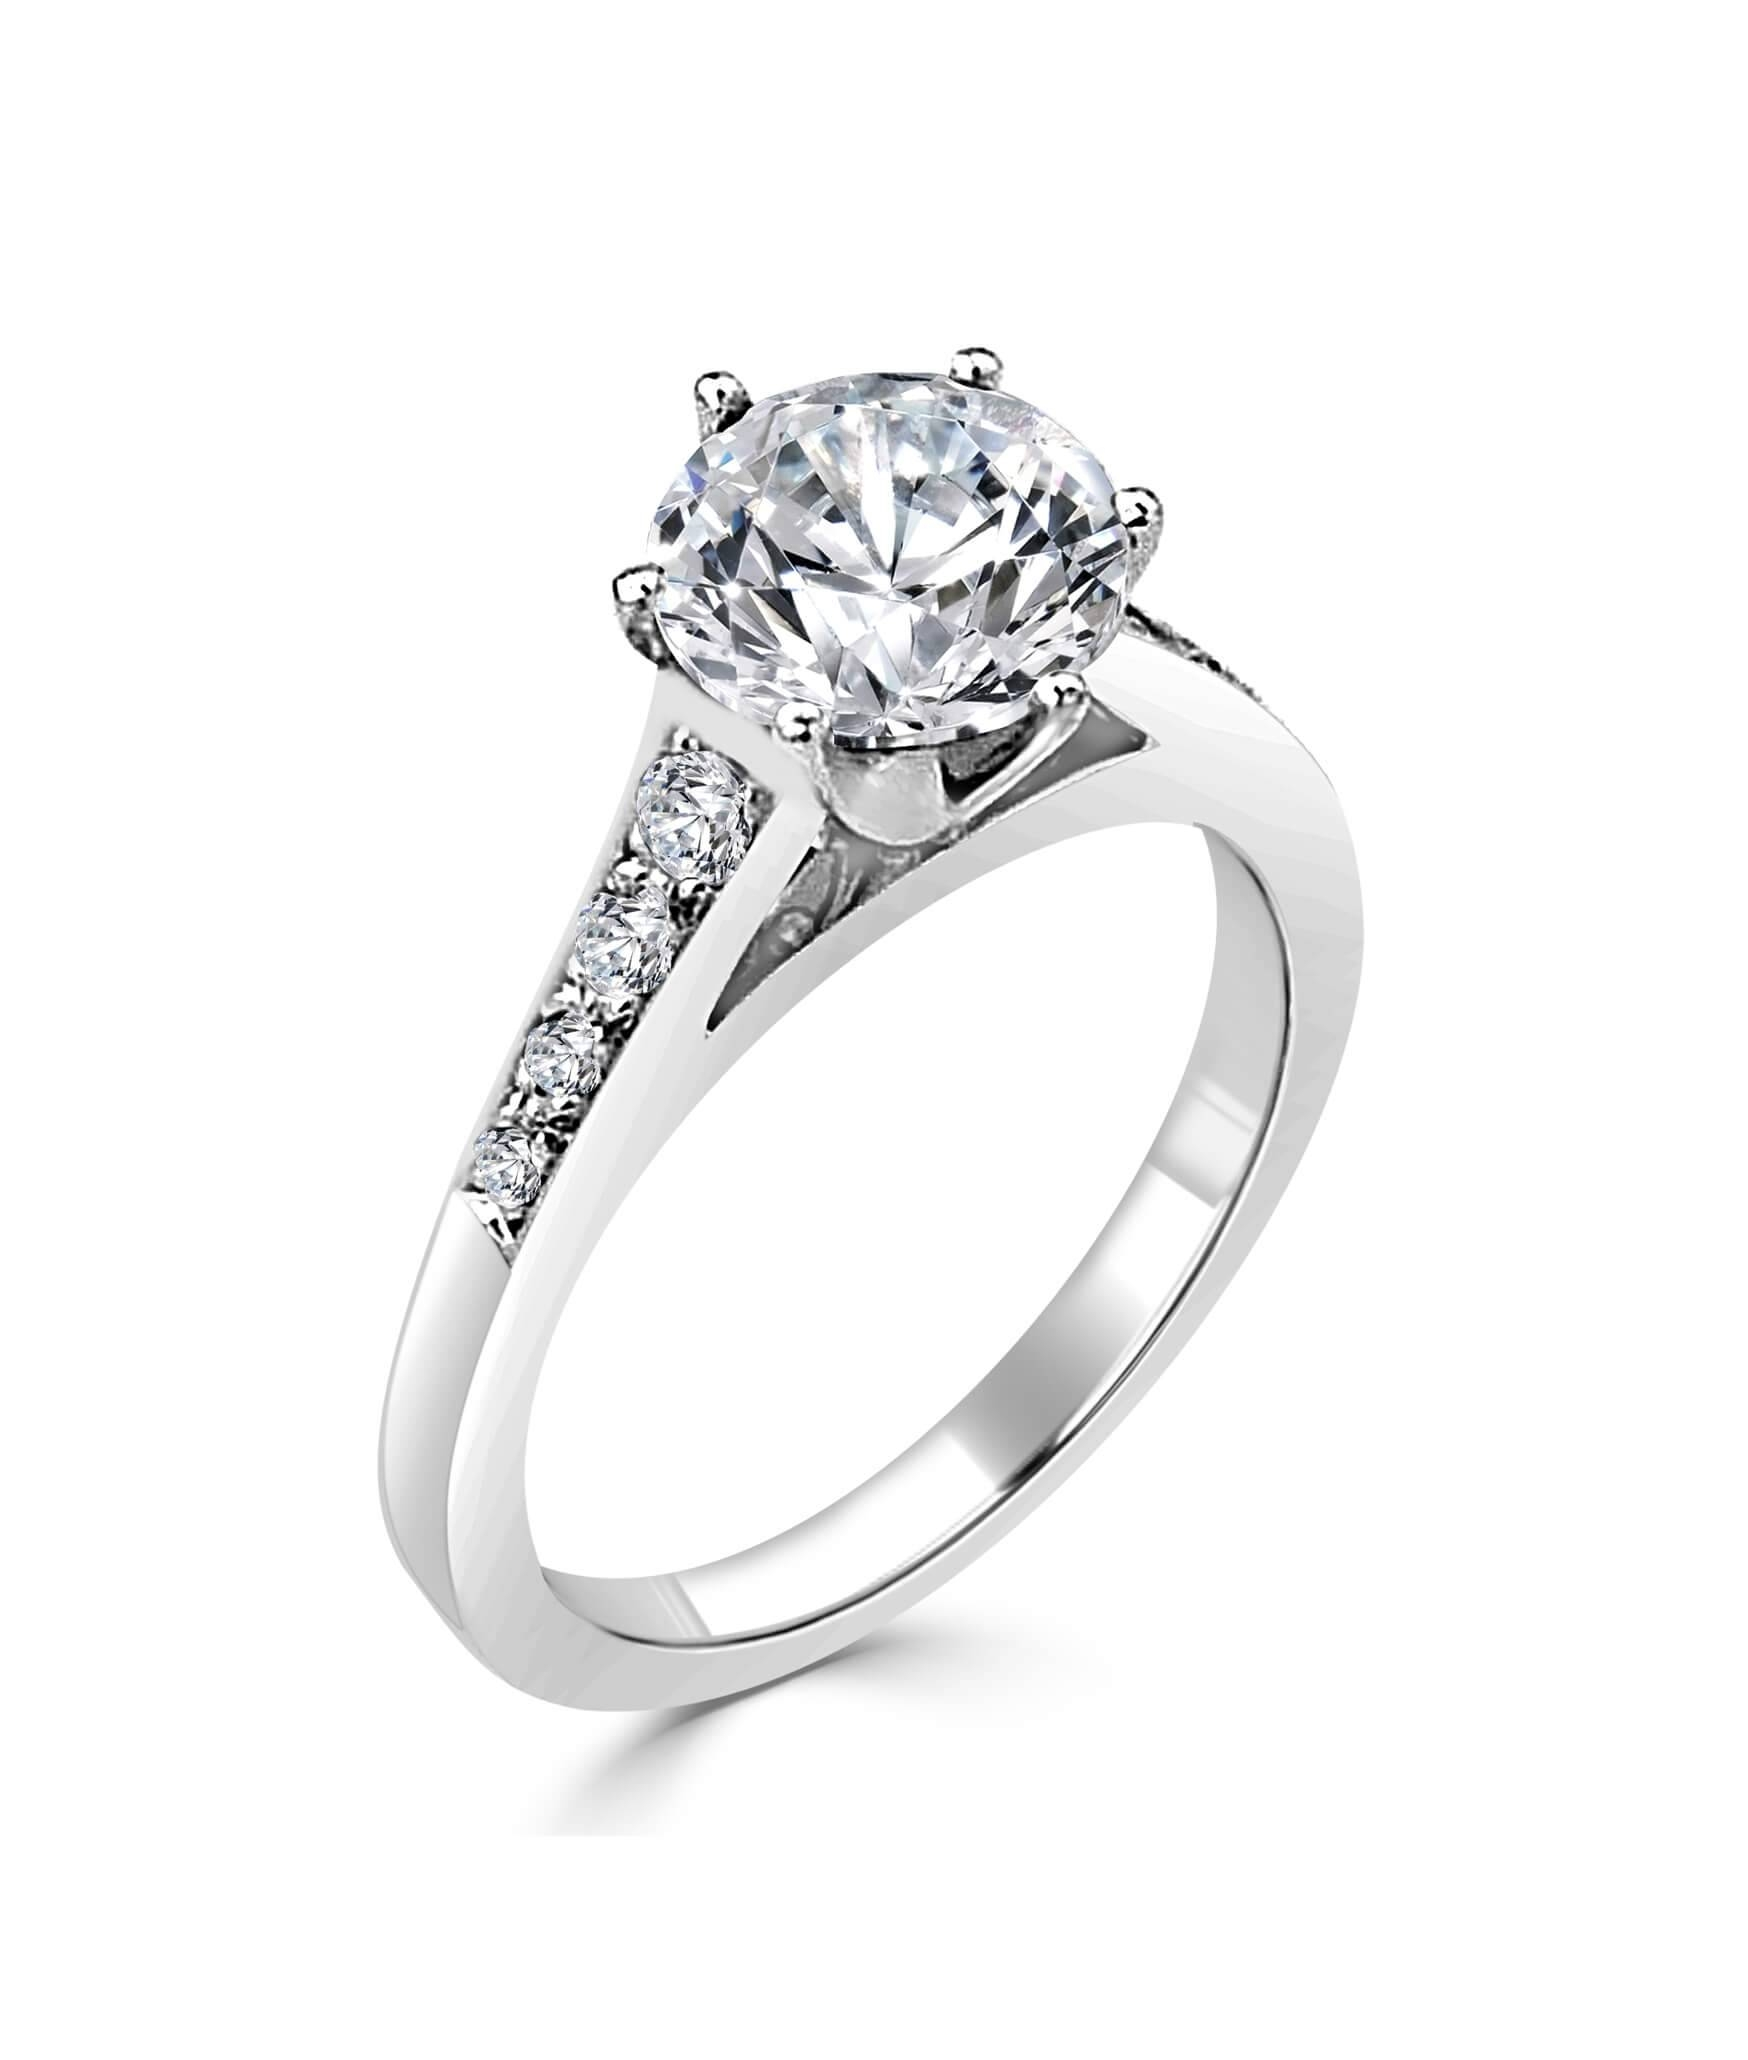 Custom Made Diamond Engagement & Wedding Rings Melbourne Cbd Throughout Custom Diamond Engagement Rings (View 7 of 15)